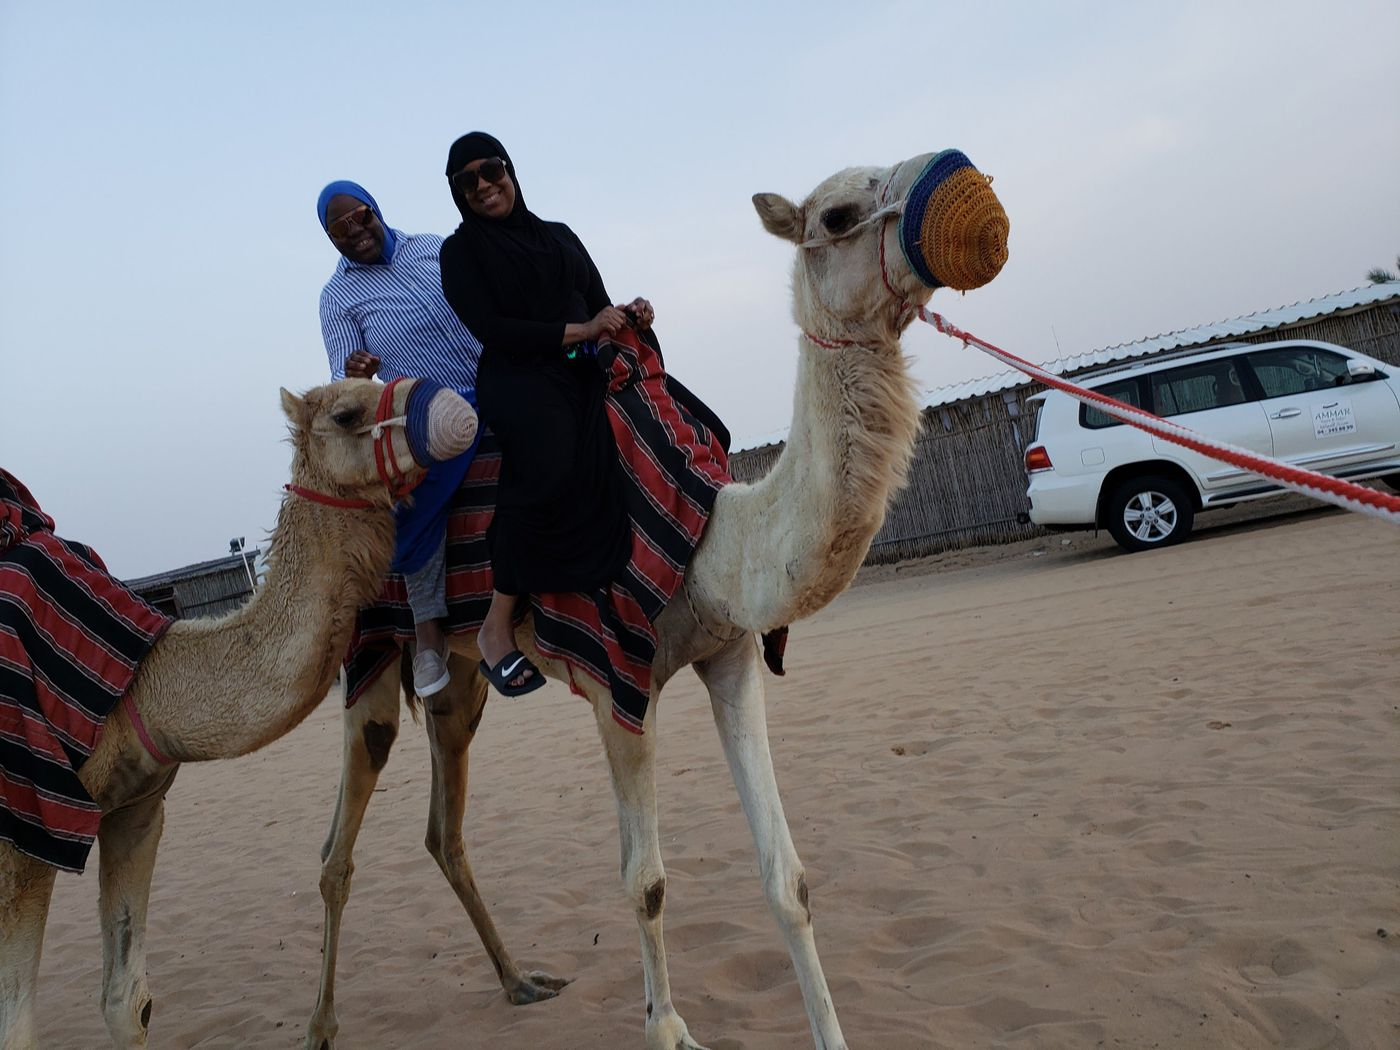 Safiya Abdullah (right) and group founder Munazza Muhammad, of the Traveling Muslimahs, ride a camel in Dubai, United Arab Emirates, April 2018.